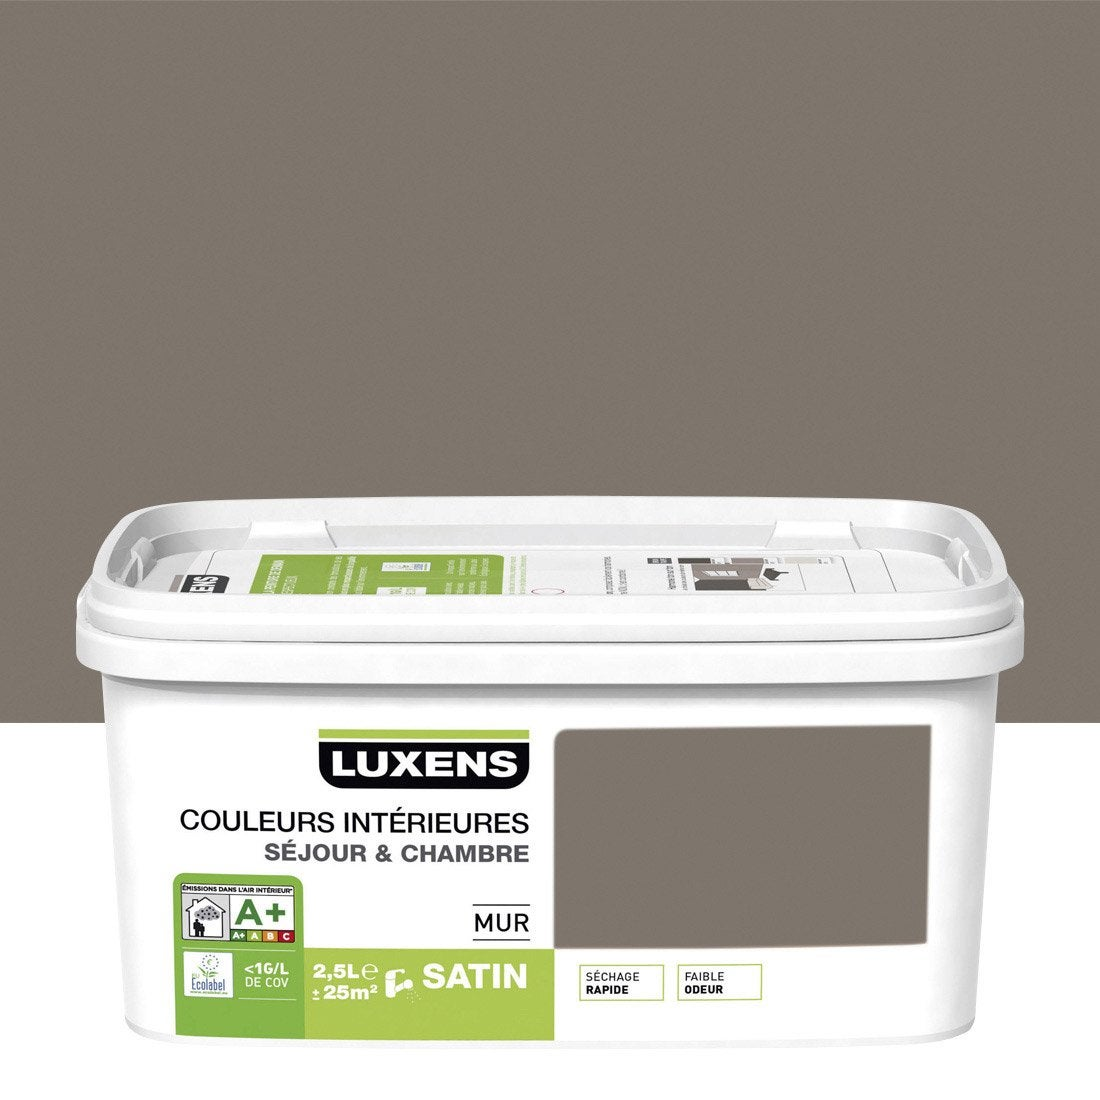 Peinture murale couleurs int rieures luxens brun taupe n 3 2 5 l leroy merlin for Peinture murale taupe